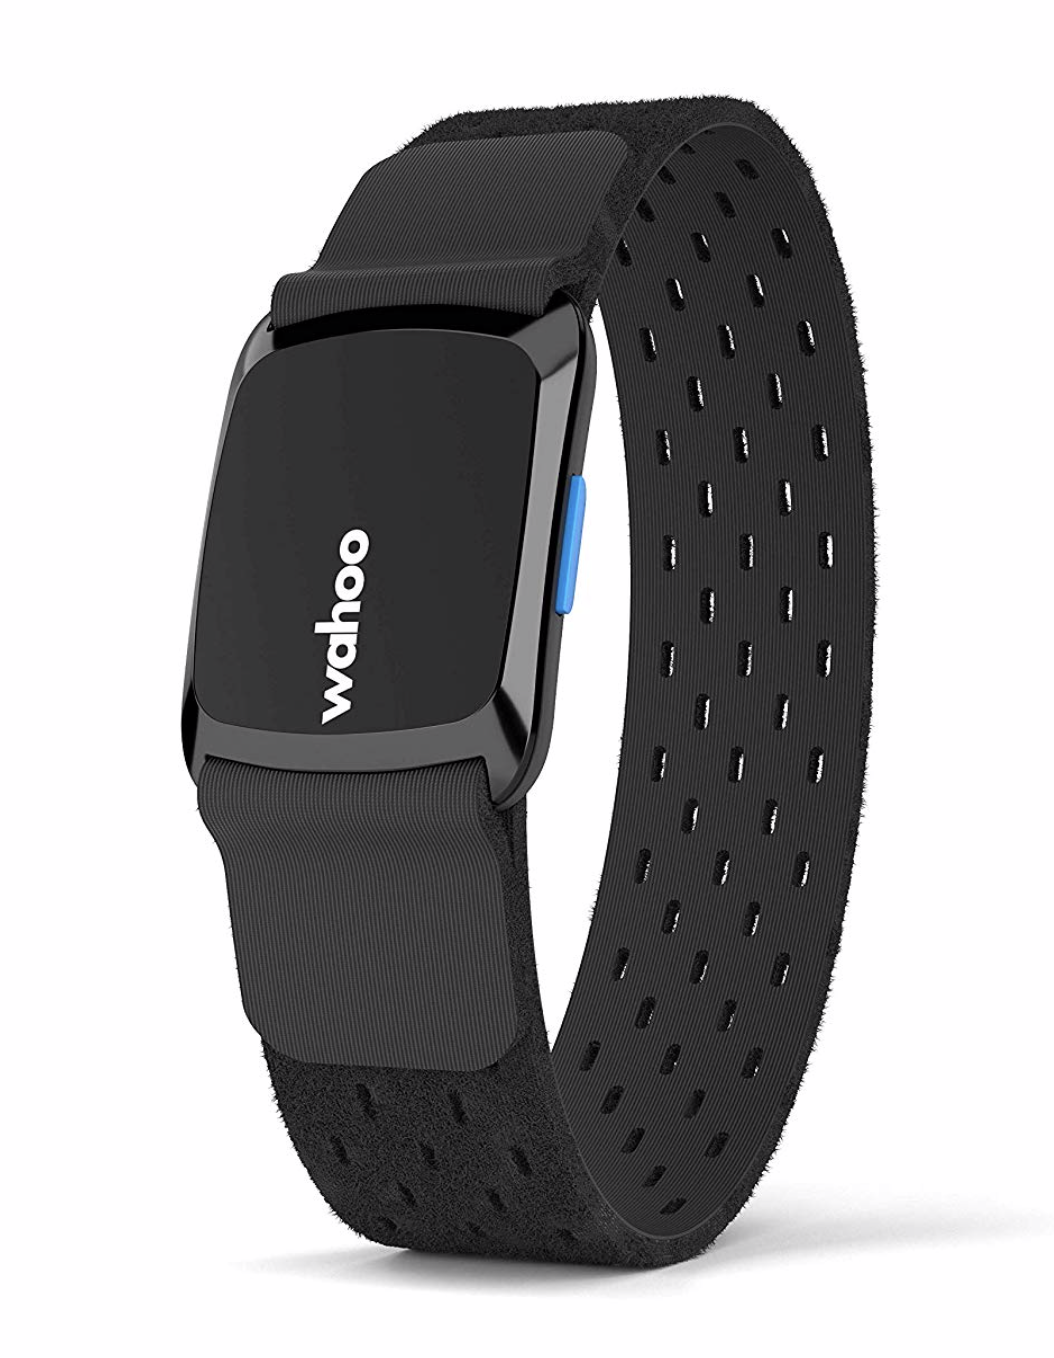 Wahoo TICKR FIT Bluetooth Heart Rate Monitor  - Made from advanced performance materials, TICKR FIT's band is made to fit comfortably around your arm, yet securely during intense activity.